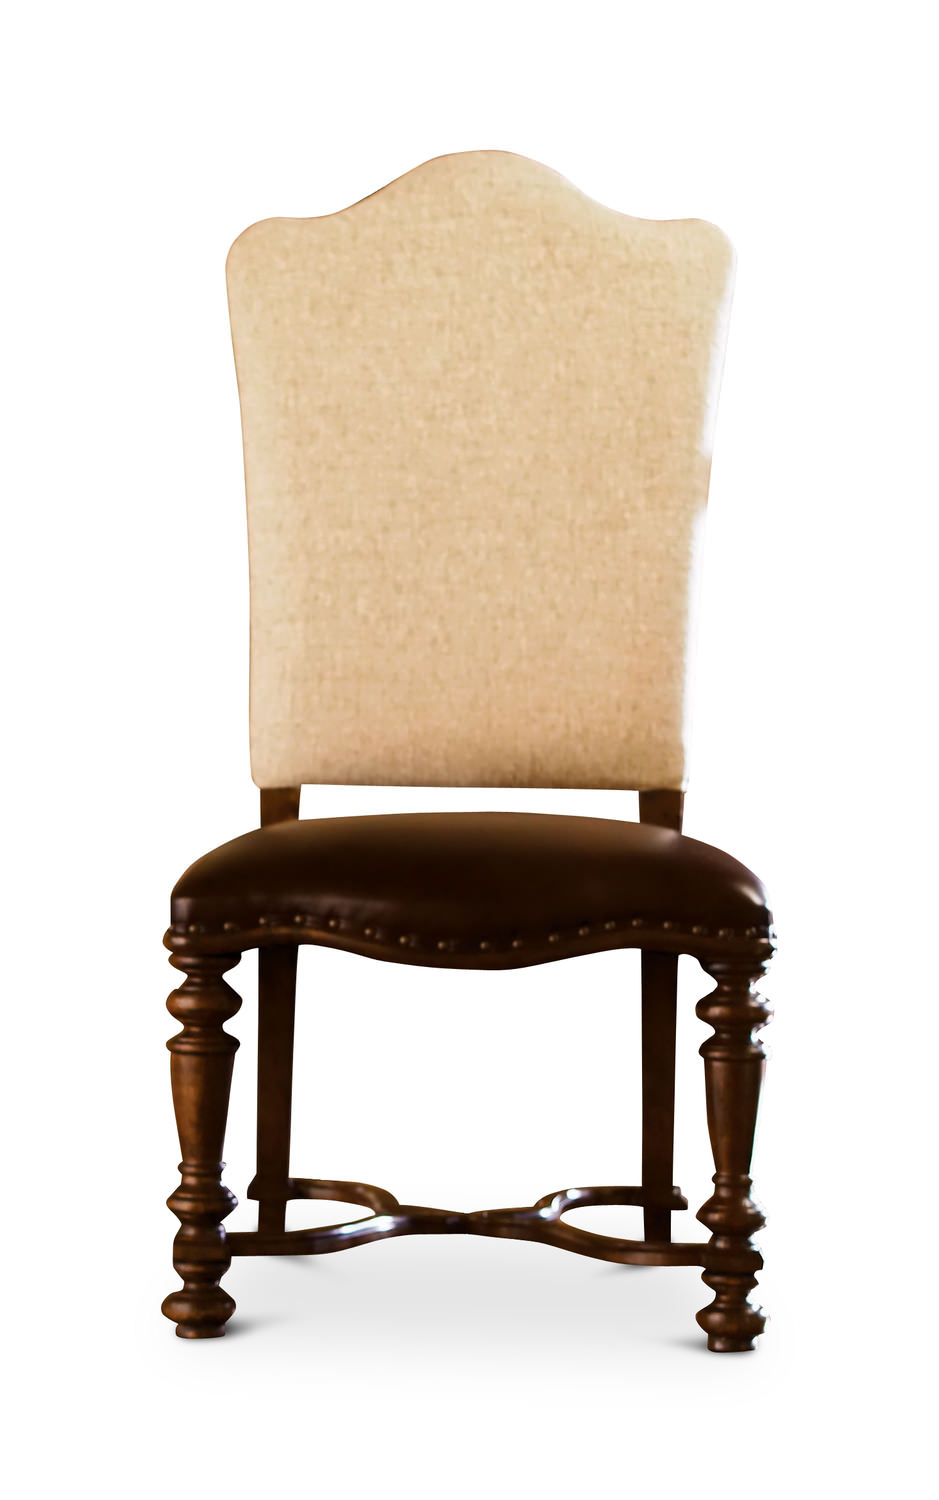 Bolero Leather/Upholstery Side Chair